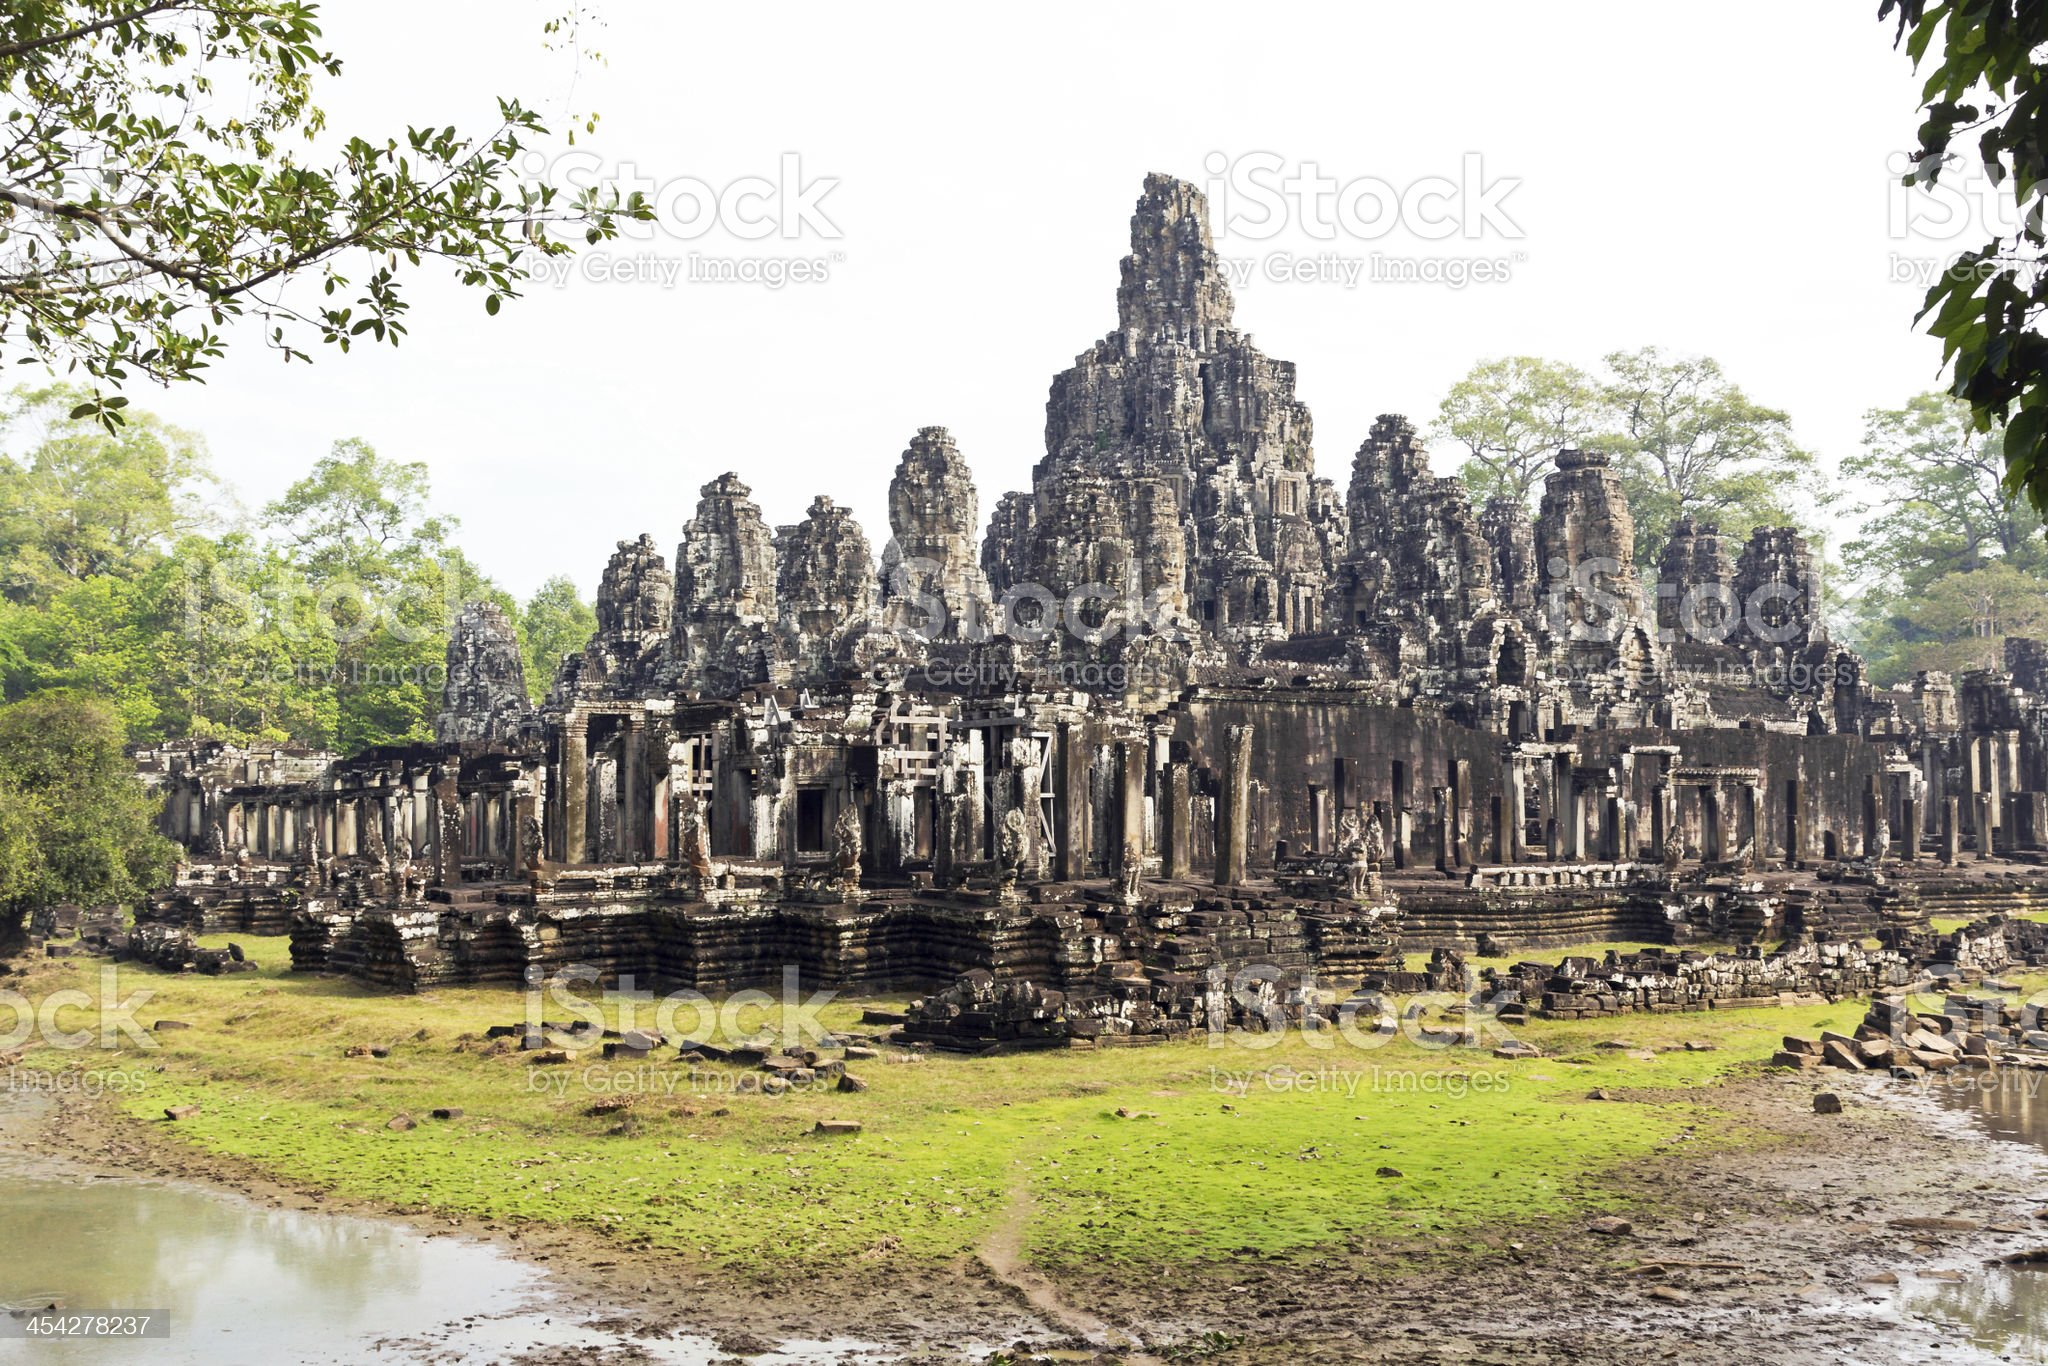 Bayon Buddhist Temple Siem Reap Cambodia royalty-free stock photo